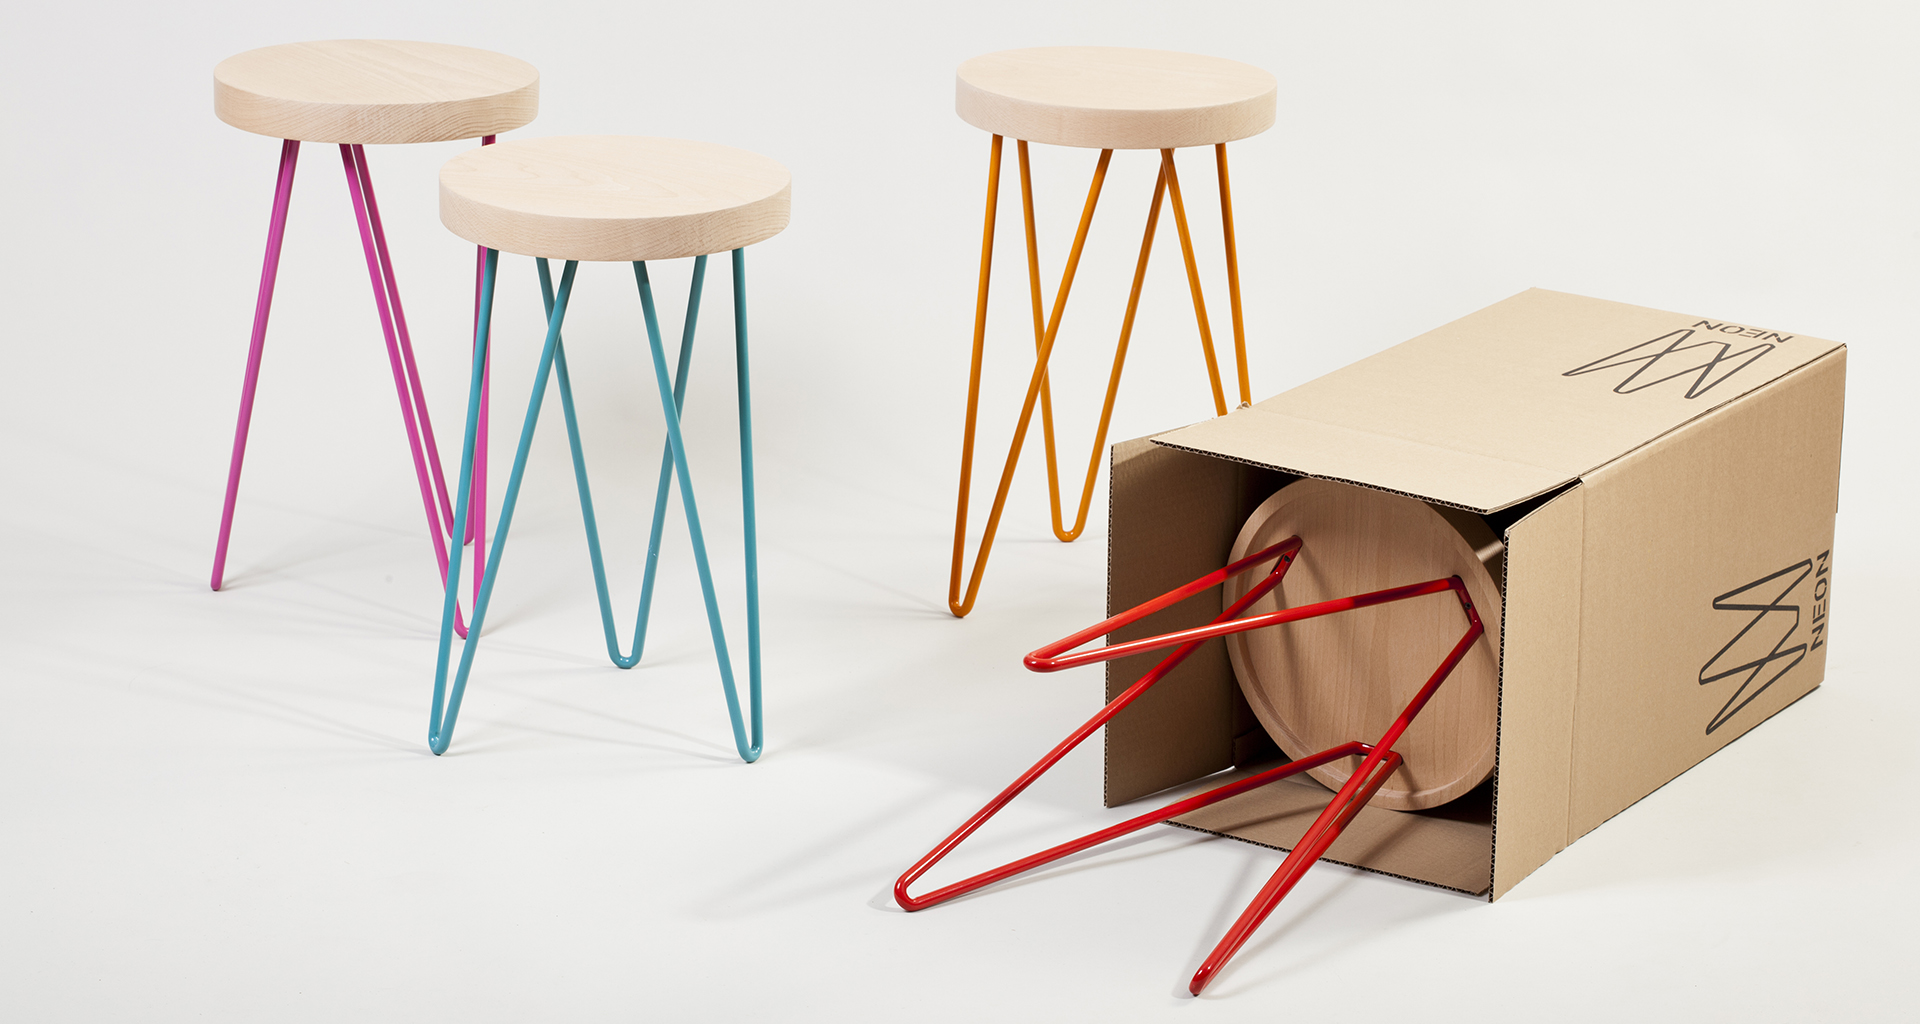 Studio praktik neon stool for Product design studio